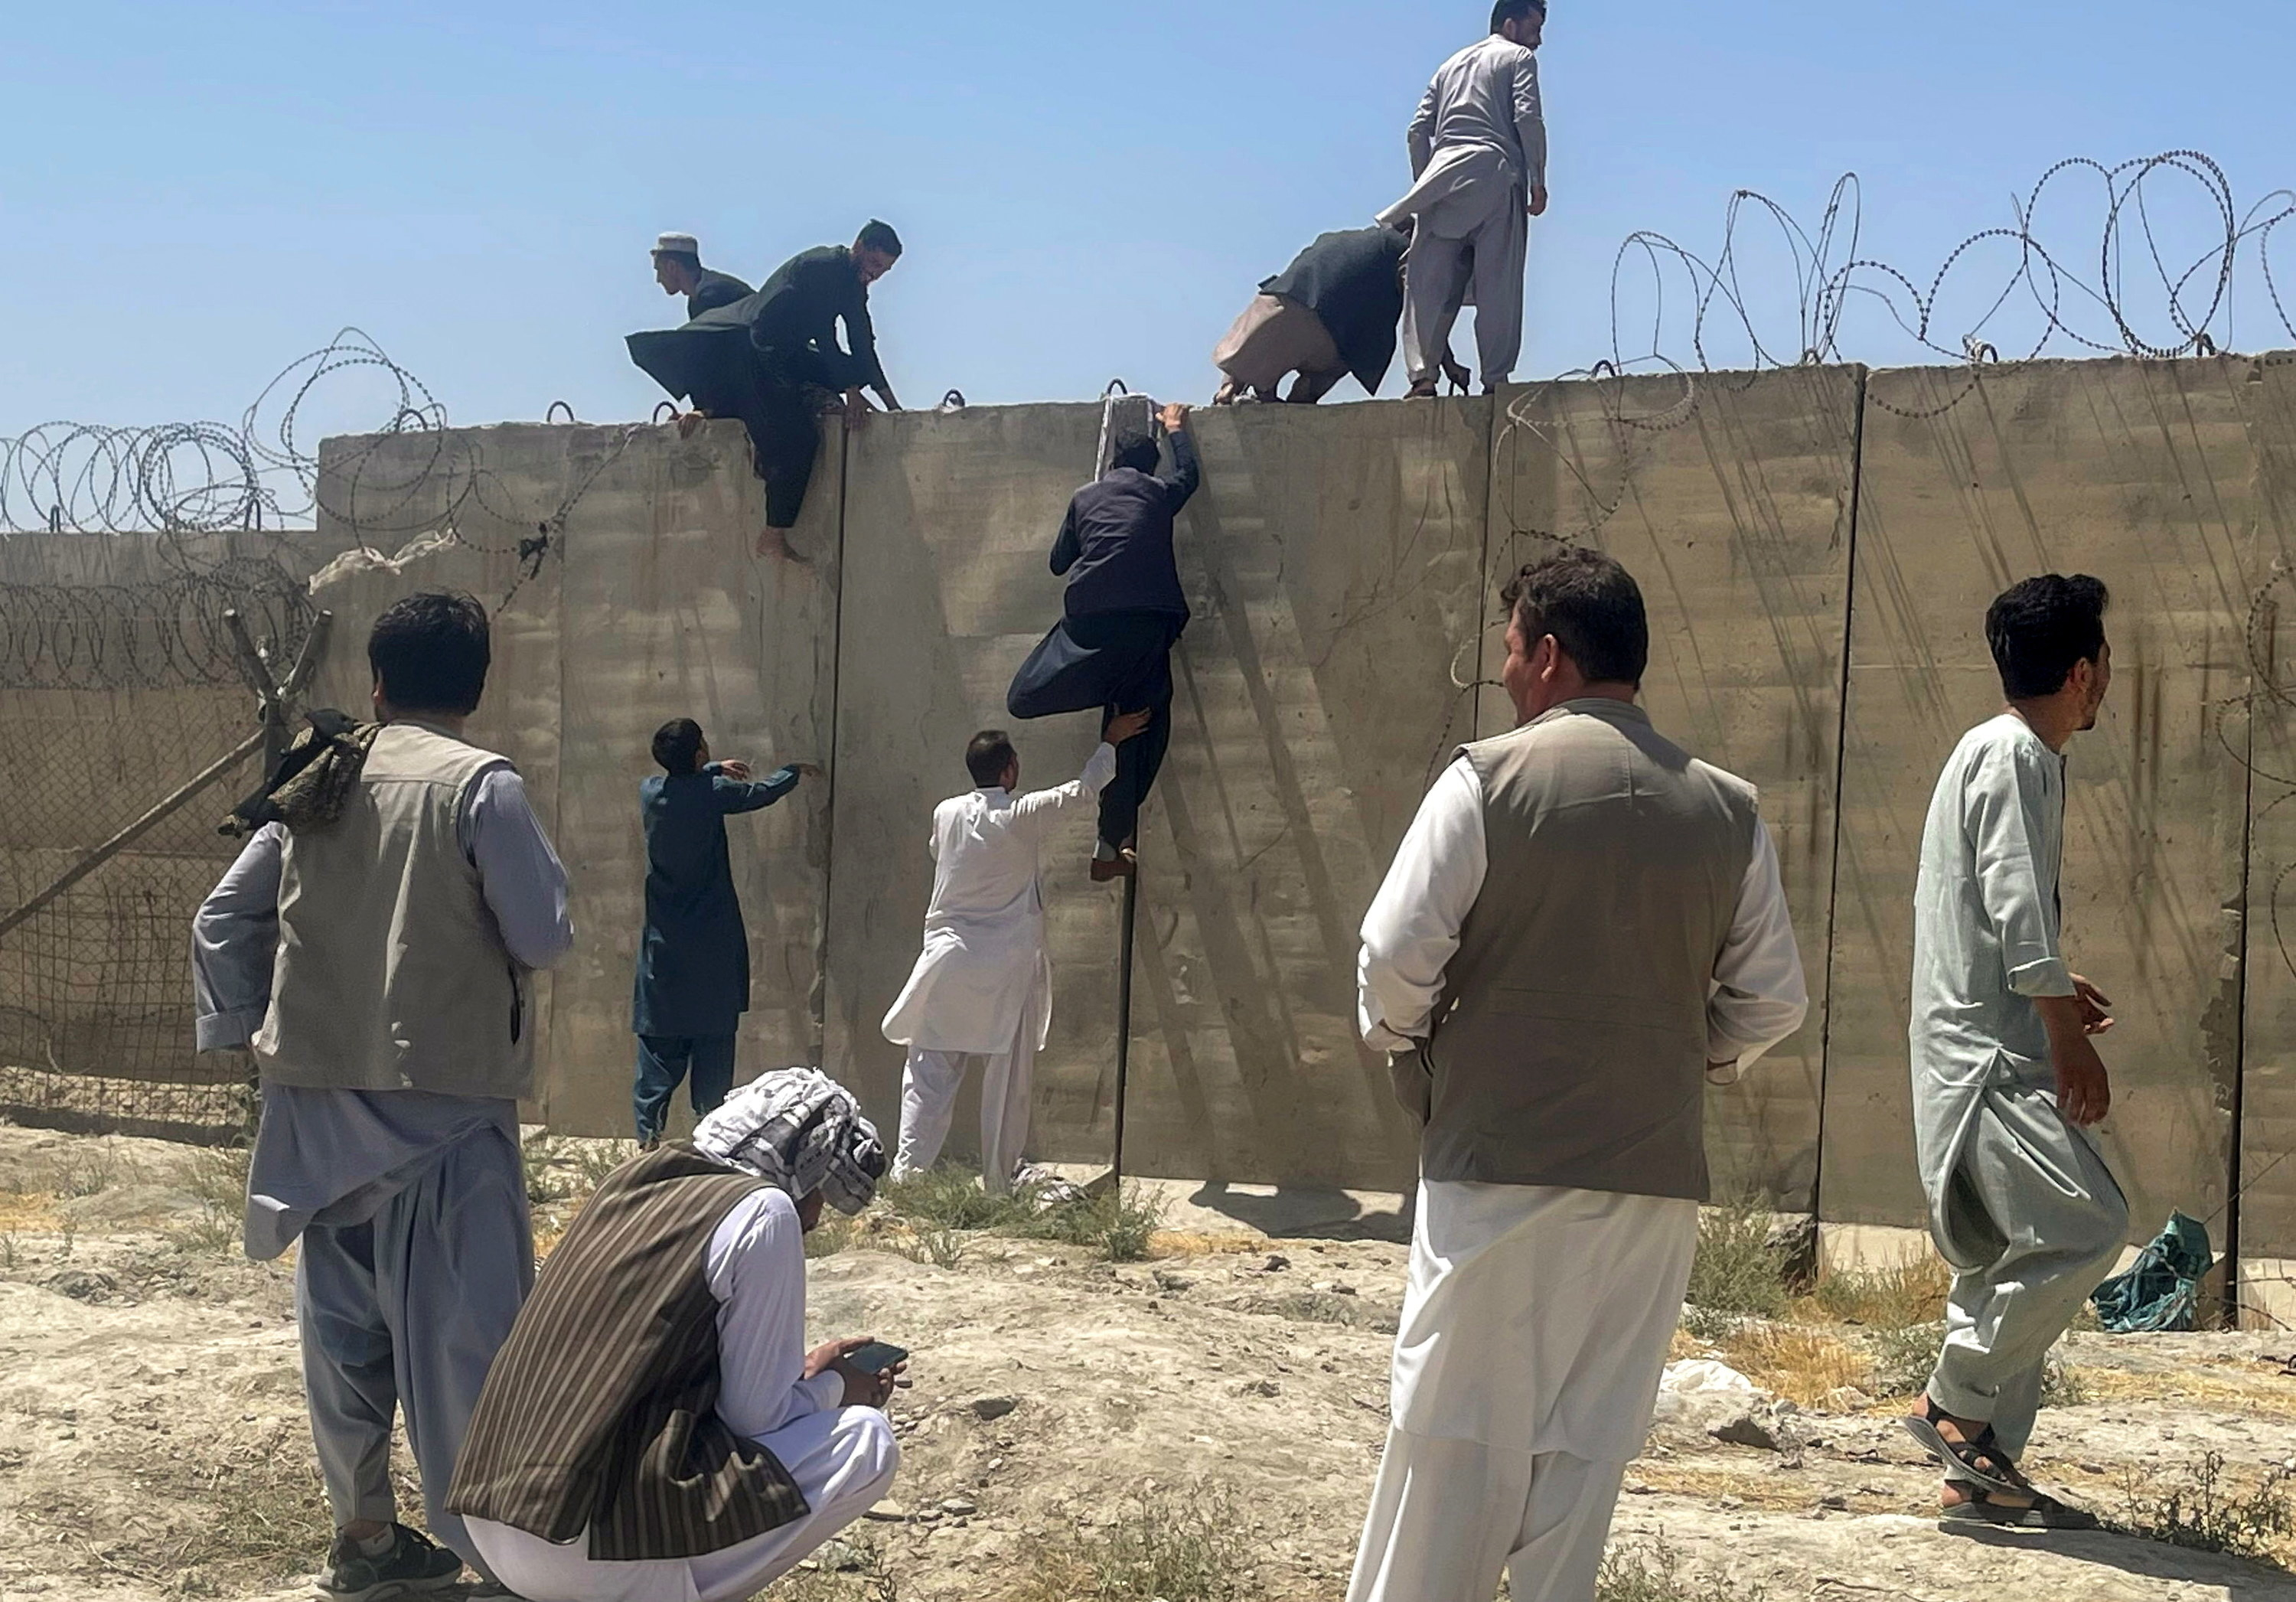 Men are climbing a wall with barbed wire